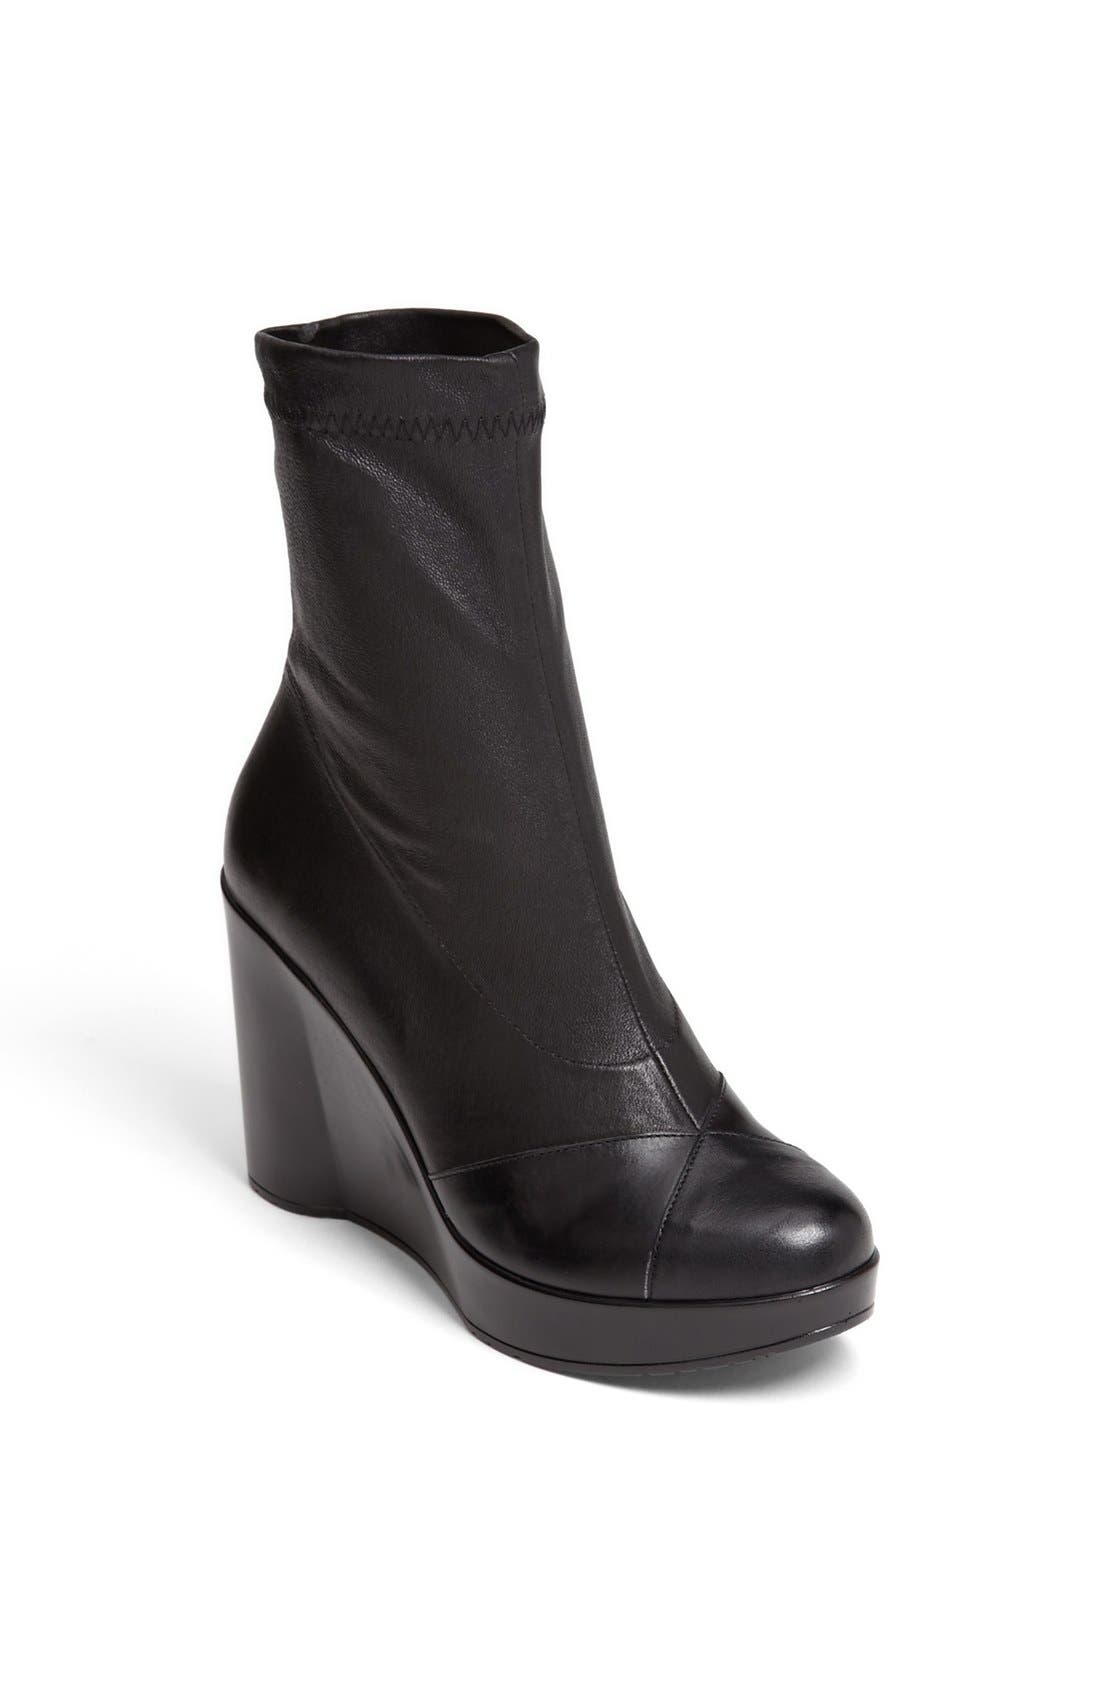 Alternate Image 1 Selected - Robert Clergerie 'Cendre' Wedge Boot